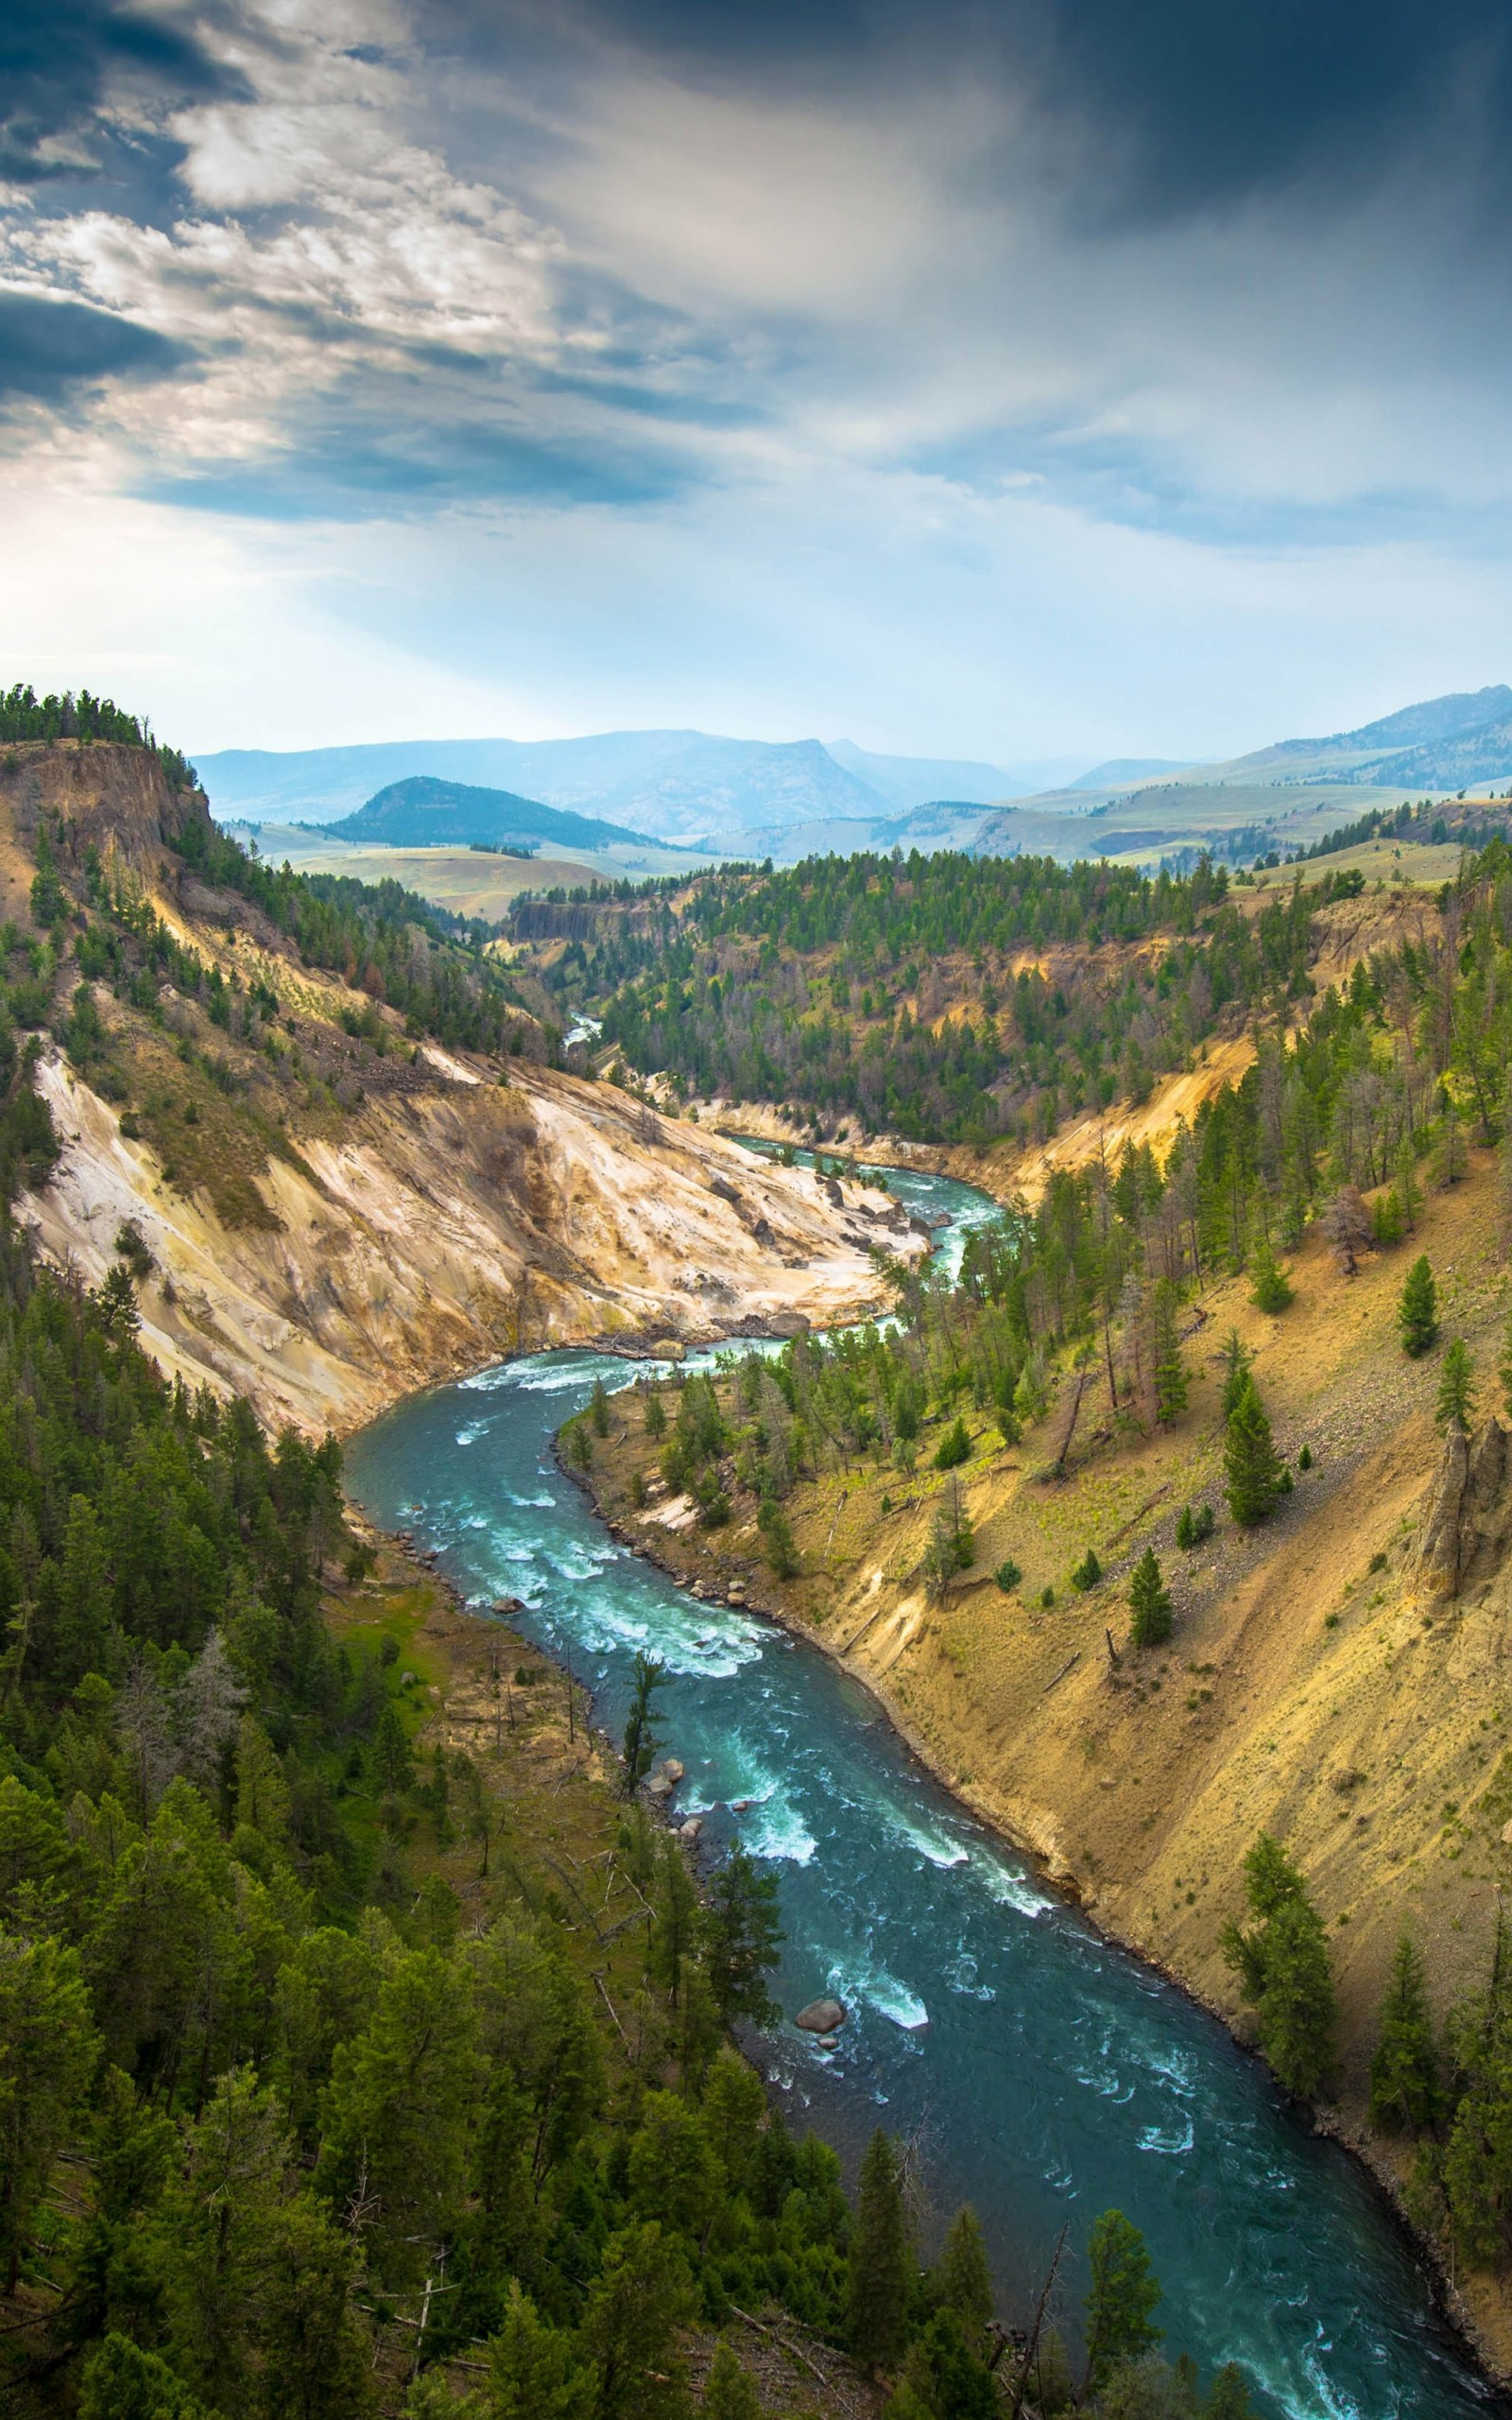 The River, Grand Canyon of Yellowstone National Park, USA Wallpaper for Amazon Kindle Fire HDX 8.9